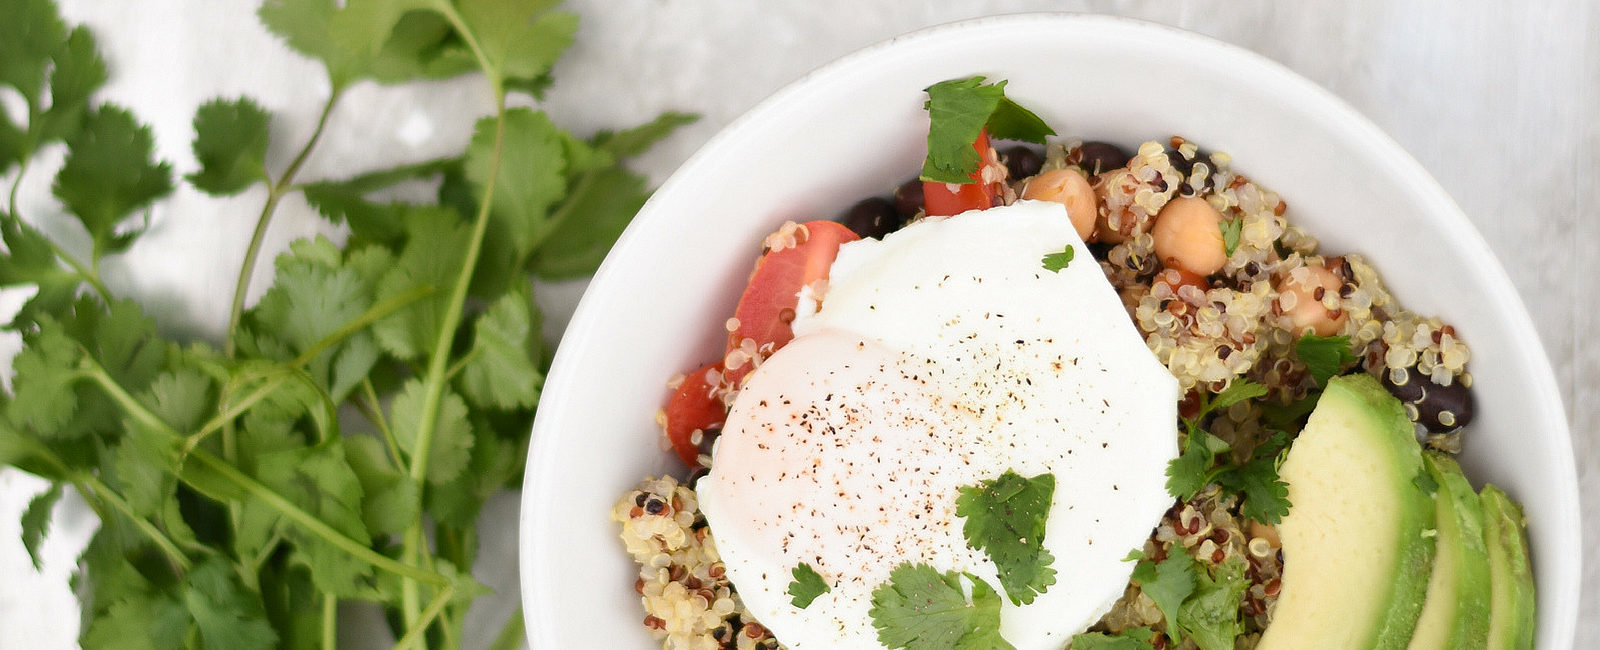 Nutritious Breakfast Recipe: Quinoa Bowl With Egg and Avocado